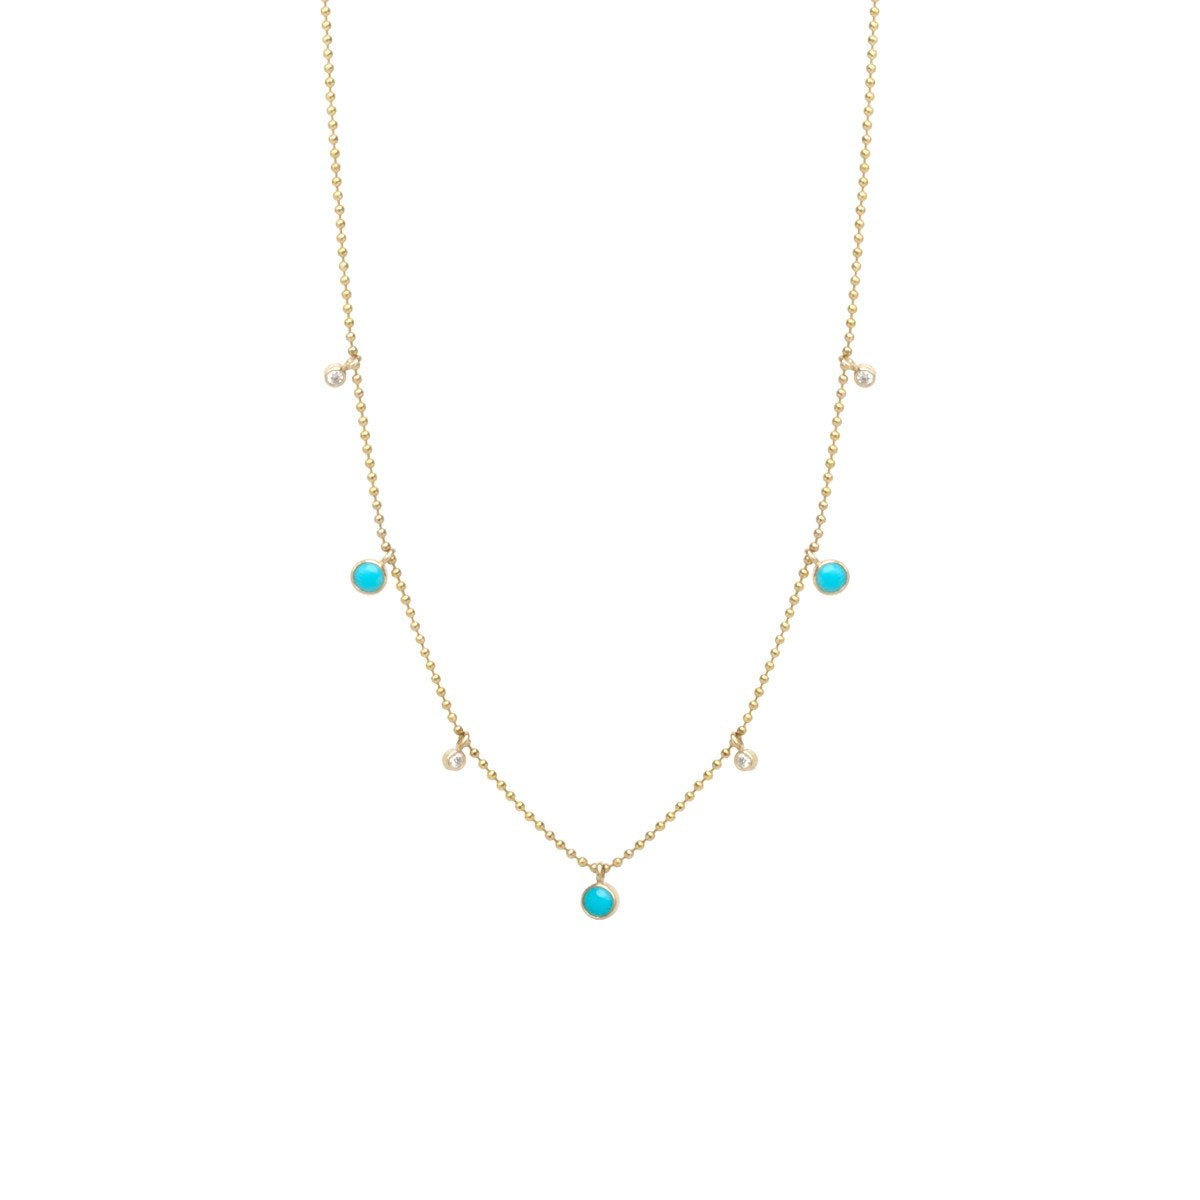 Turquoise and Diamond Dangle Necklace | Art + Soul Gallery